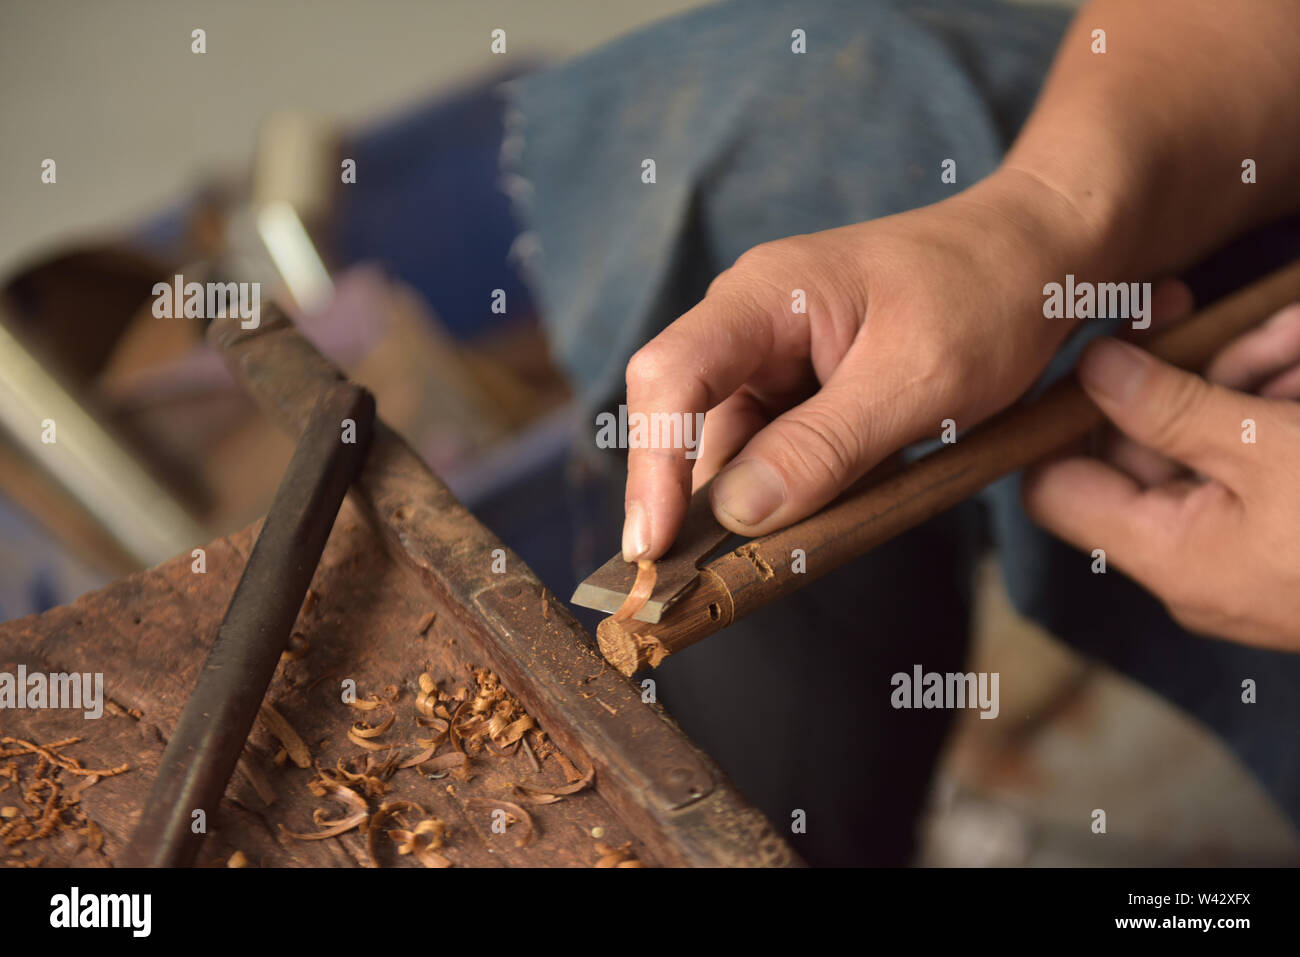 (190719) -- QINGDAO, July 19, 2019 (Xinhua) -- Sun Lianyong, a steelyard craftsman, makes the beam of a steelyard at his workshop in Jinkou Town of Jimo District in Qingdao, east China's Shandong Province, July 19, 2019. Steelyard, a traditional weighing instrument with a long history, used to be popular for its low cost and good portability. In the early 1990s, there used to be more than 30 steelyard workshops in Jimo as the development of market economy pushed up people's demand for steelyards.   The 49-year-old craftsman Sun Lianyong is an inheritor of traditional steelyard making technique - Stock Image